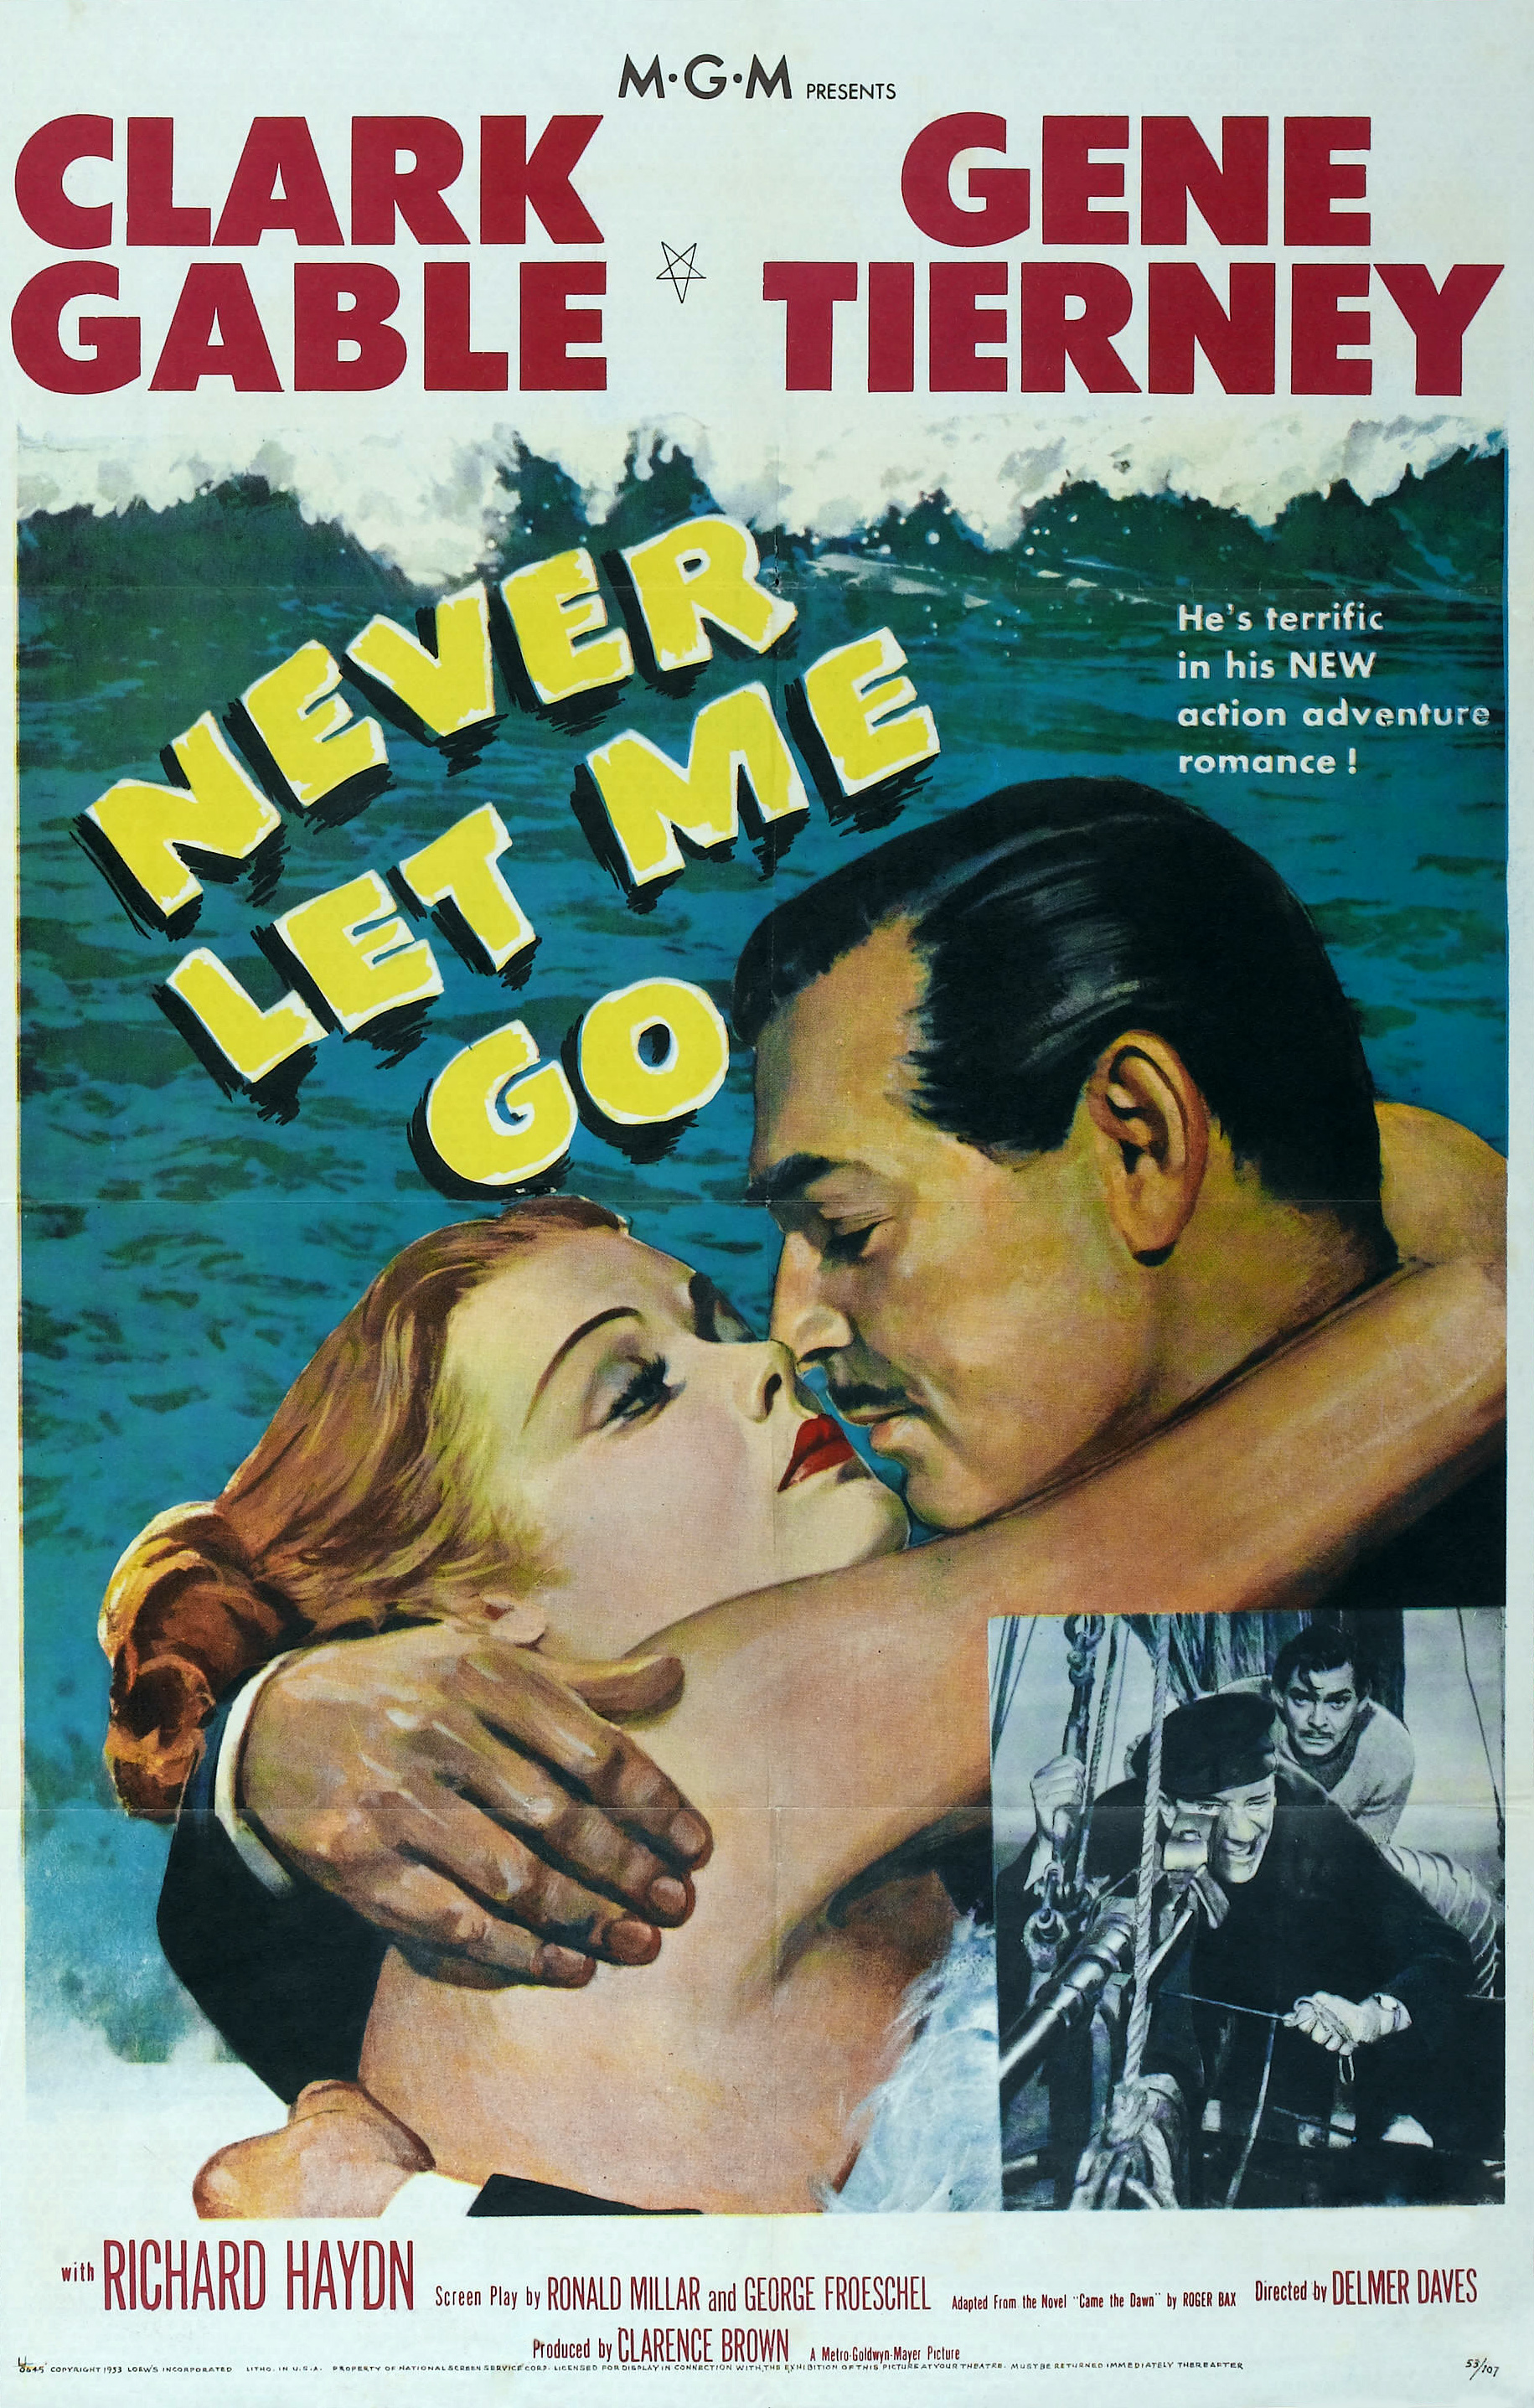 Clark Gable, Gene Tierney, and Richard Haydn in Never Let Me Go (1953)